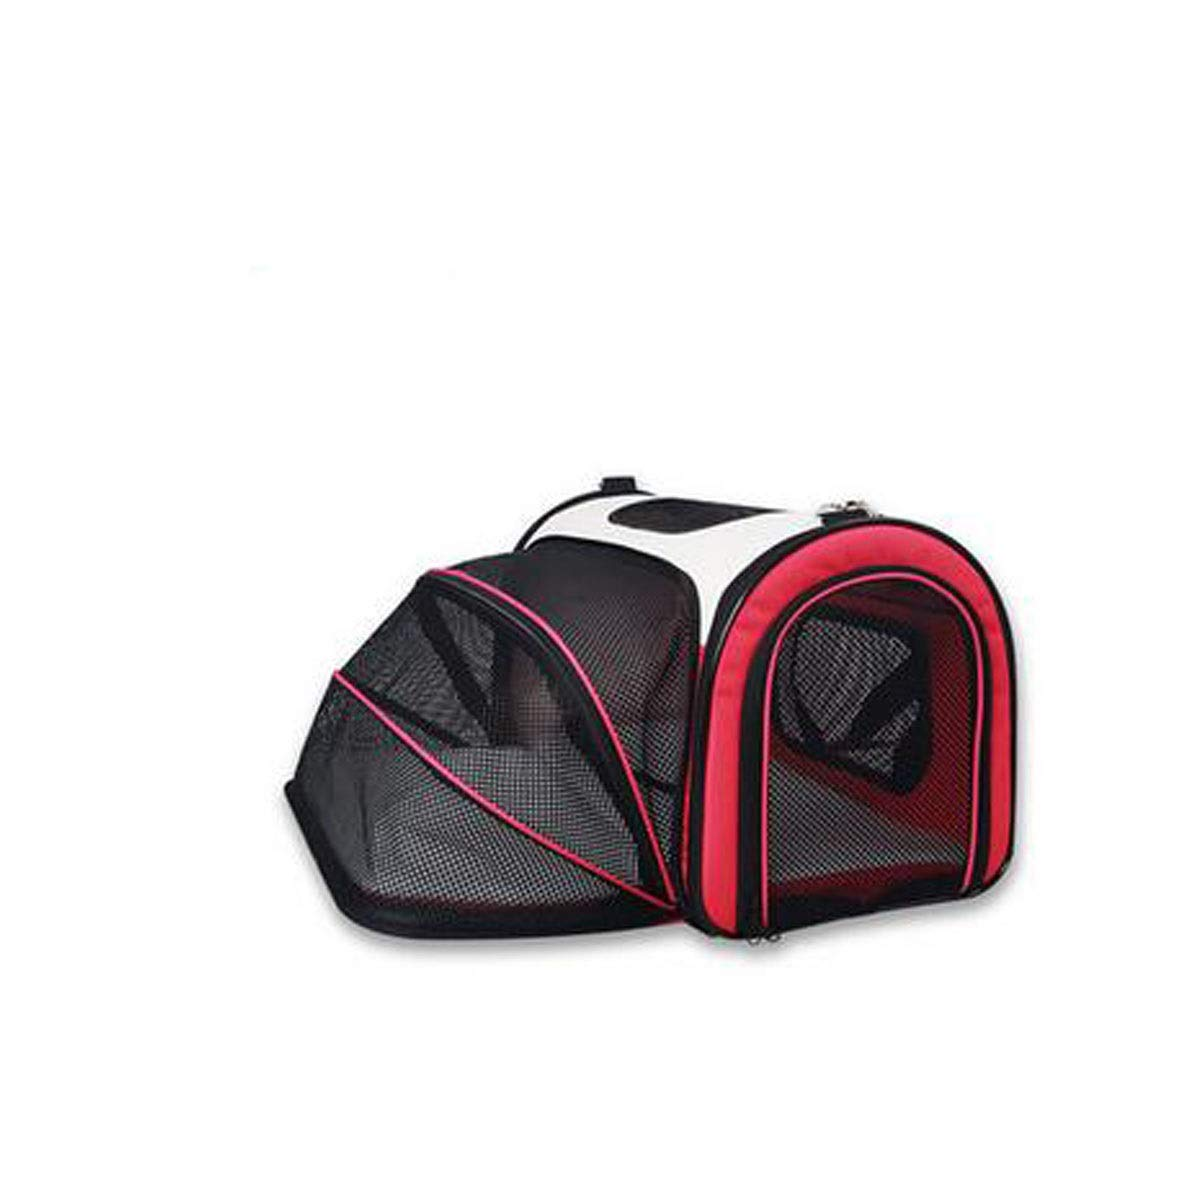 Red Chenjinxiang01 Scalable Large-capacity Portable Pet Back For A Variety Of Outdoor Sports, Hiking, Camping And Travel. (color   Red)